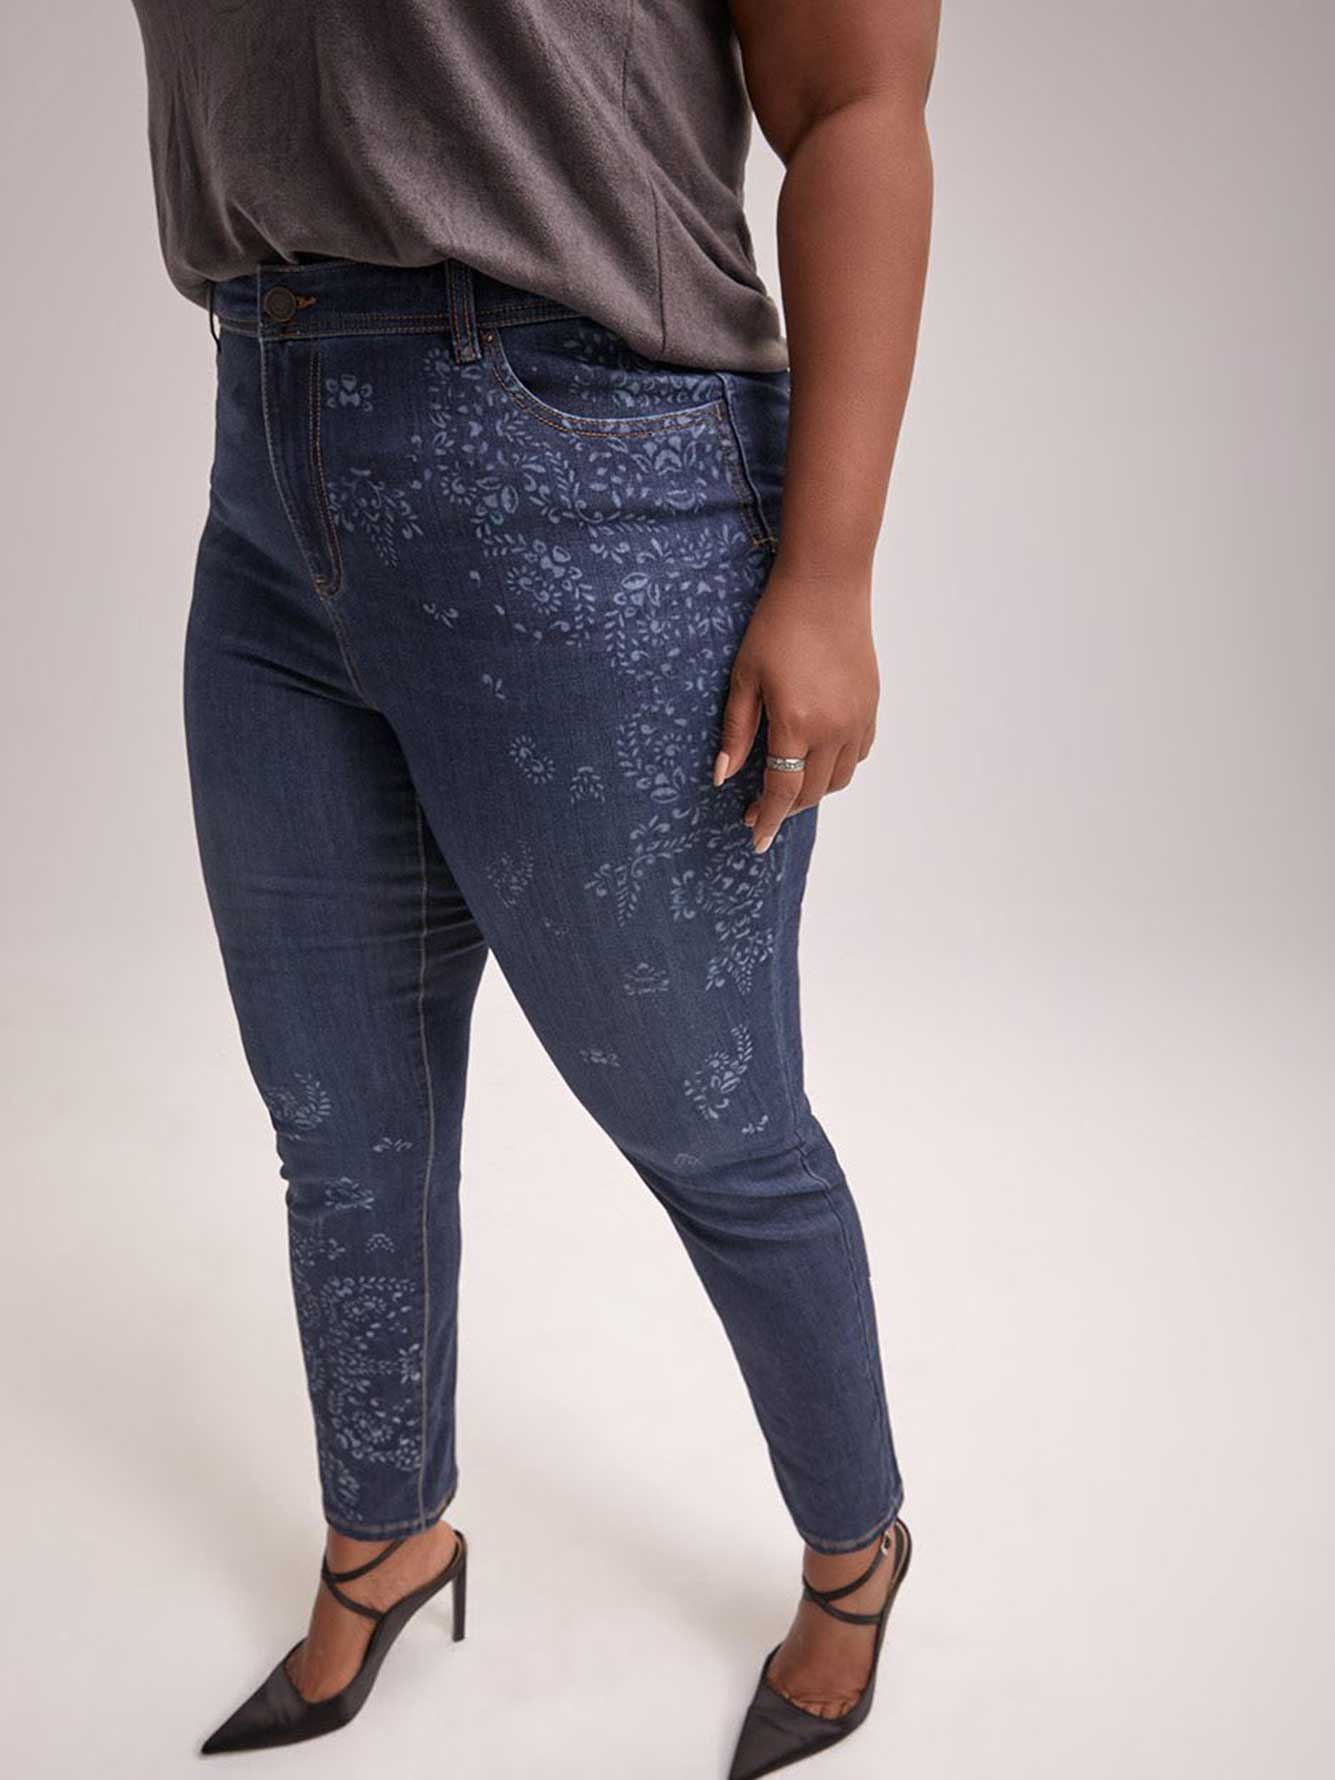 Petite - Slightly Curvy Skinny Leg Jean with Print - d/C JEANS